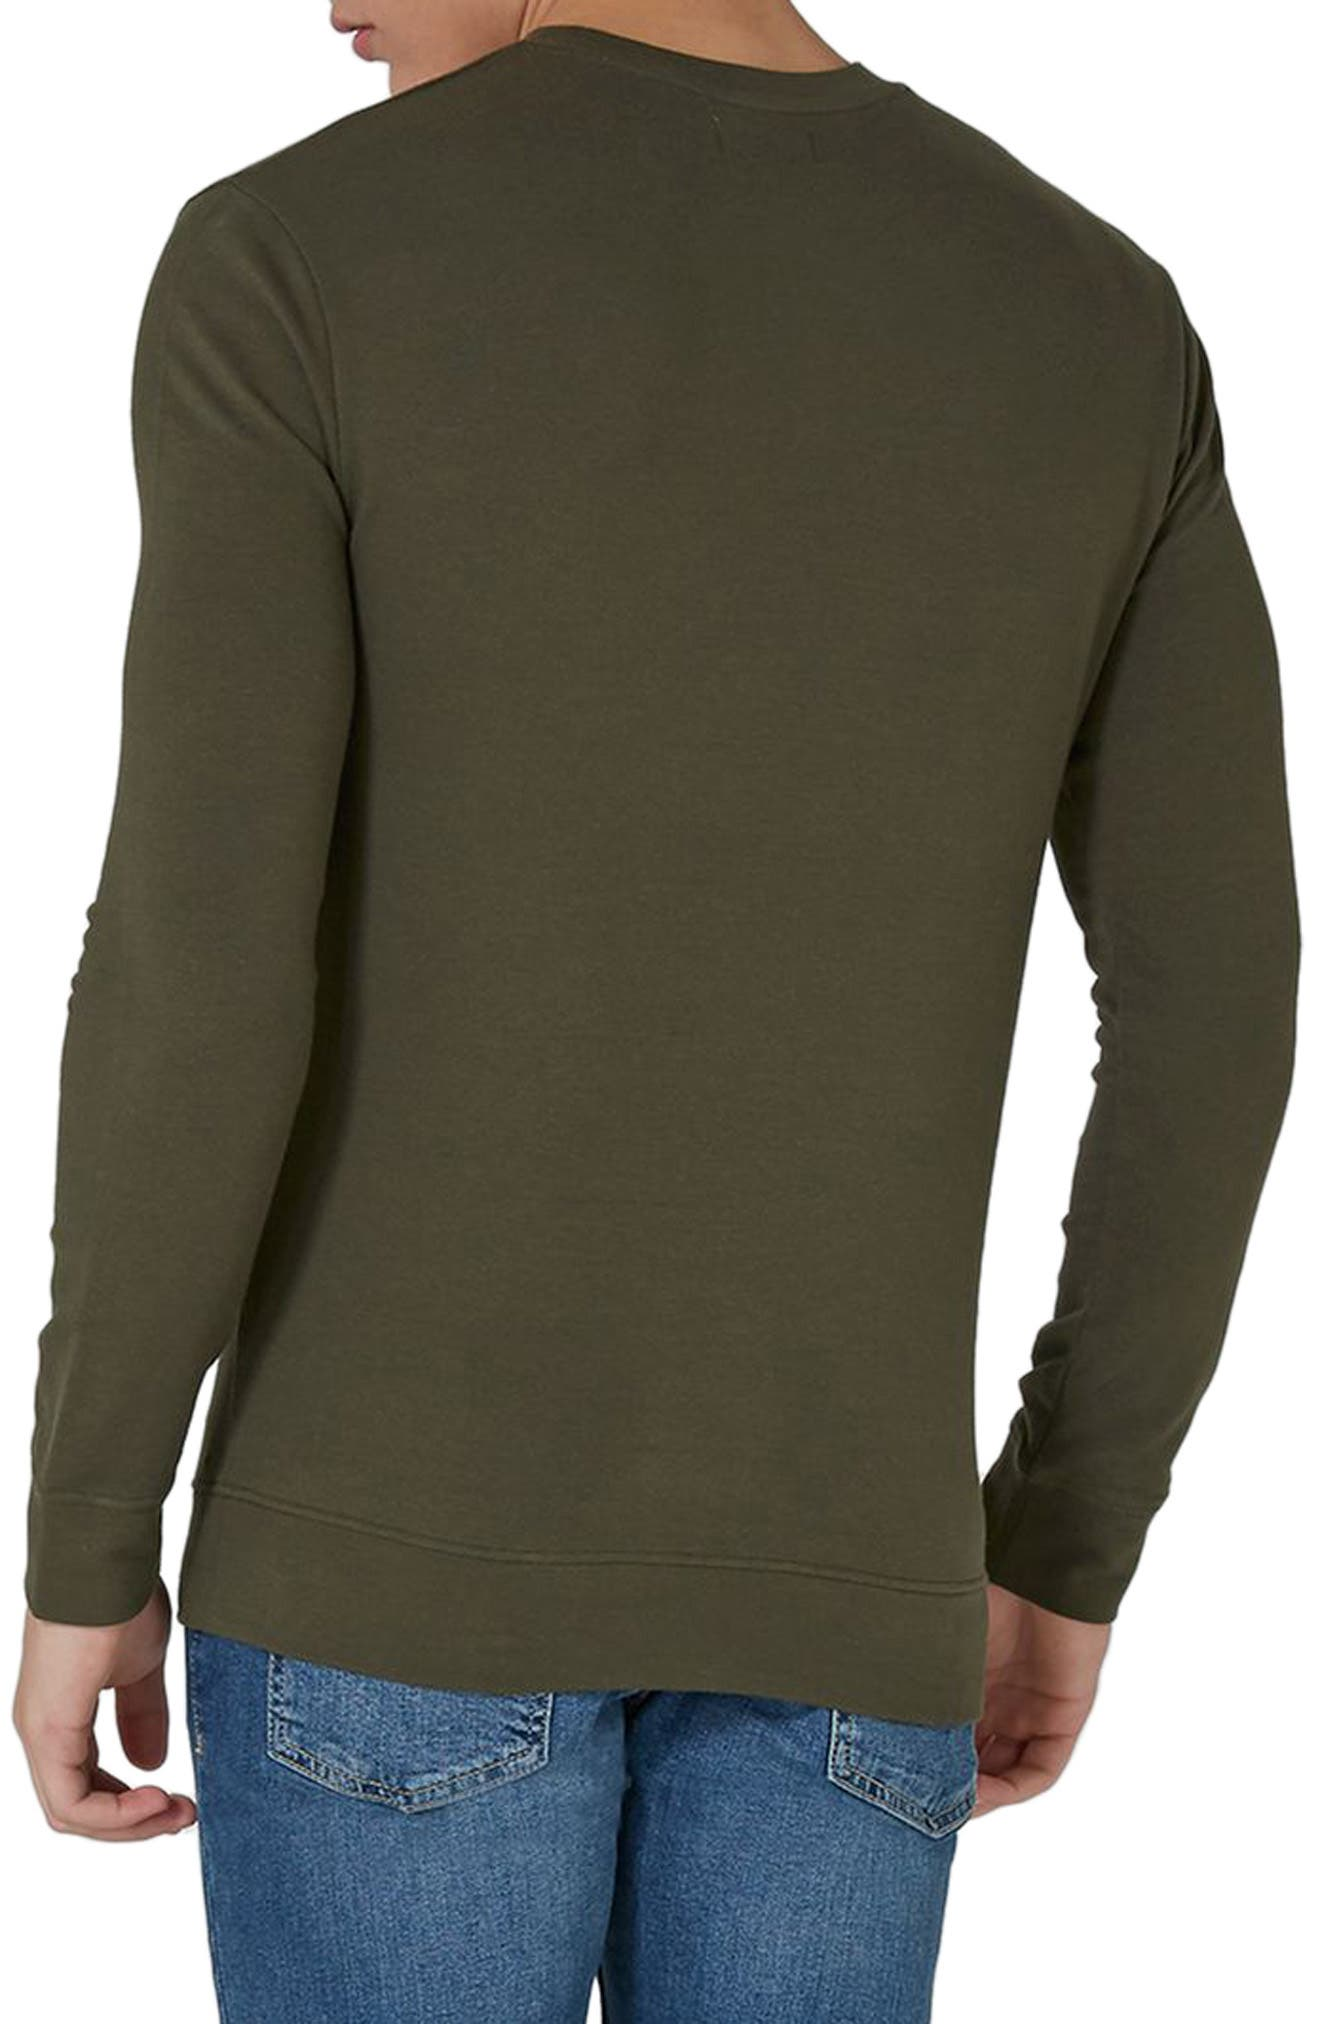 Ultra Muscle Fit Sweatshirt,                             Alternate thumbnail 2, color,                             Olive